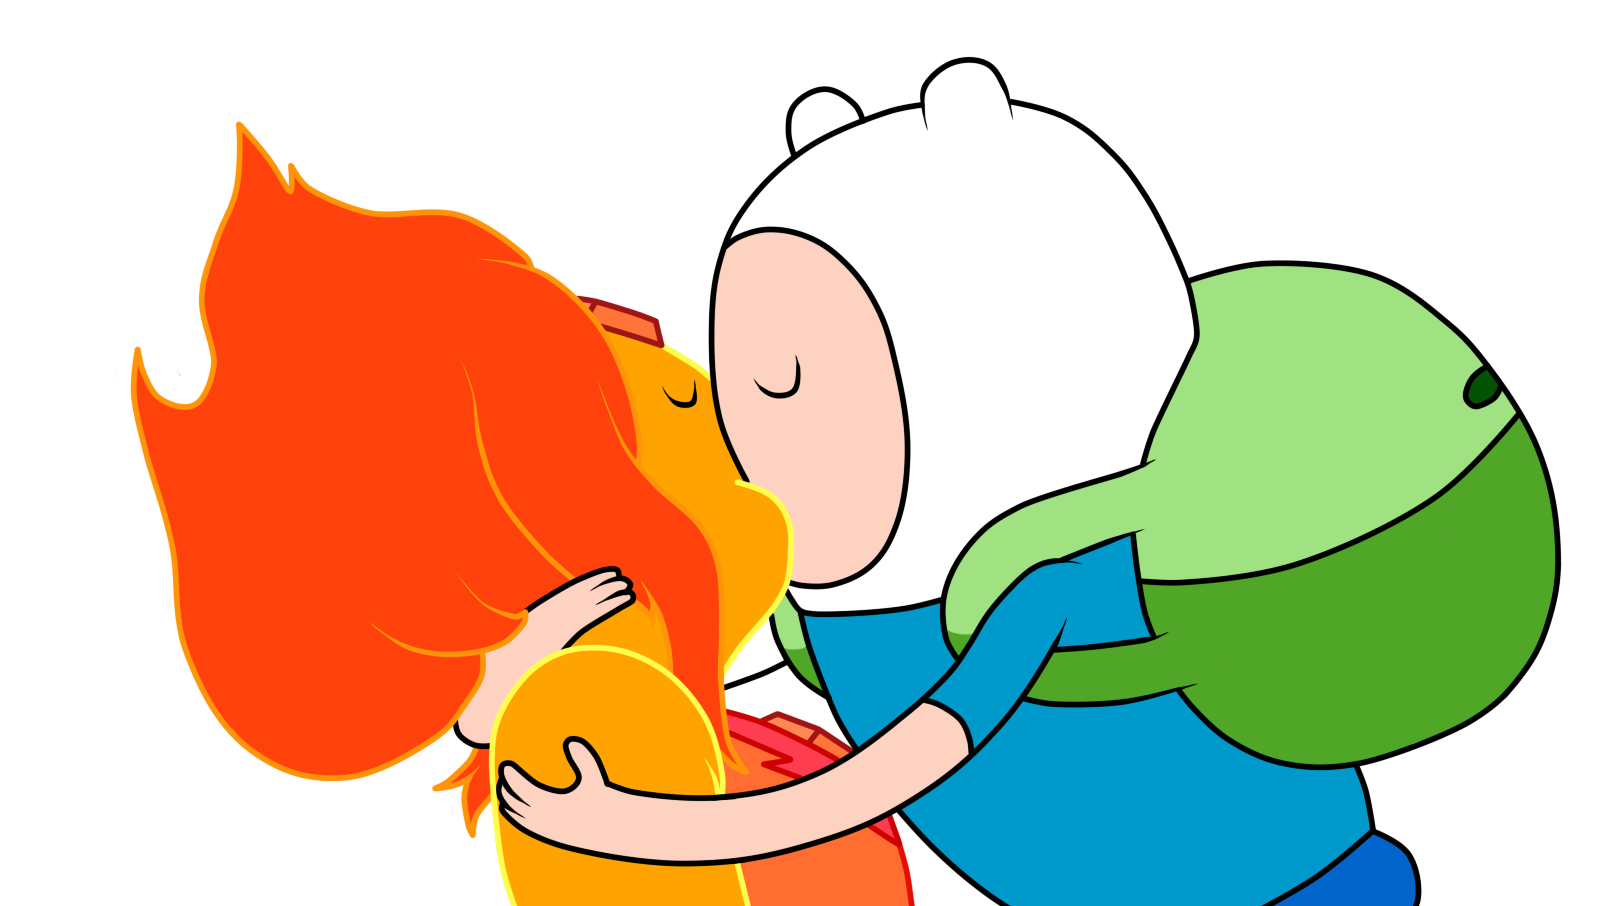 Image - Finn and flame princess kiss 2 day color by julietsbart